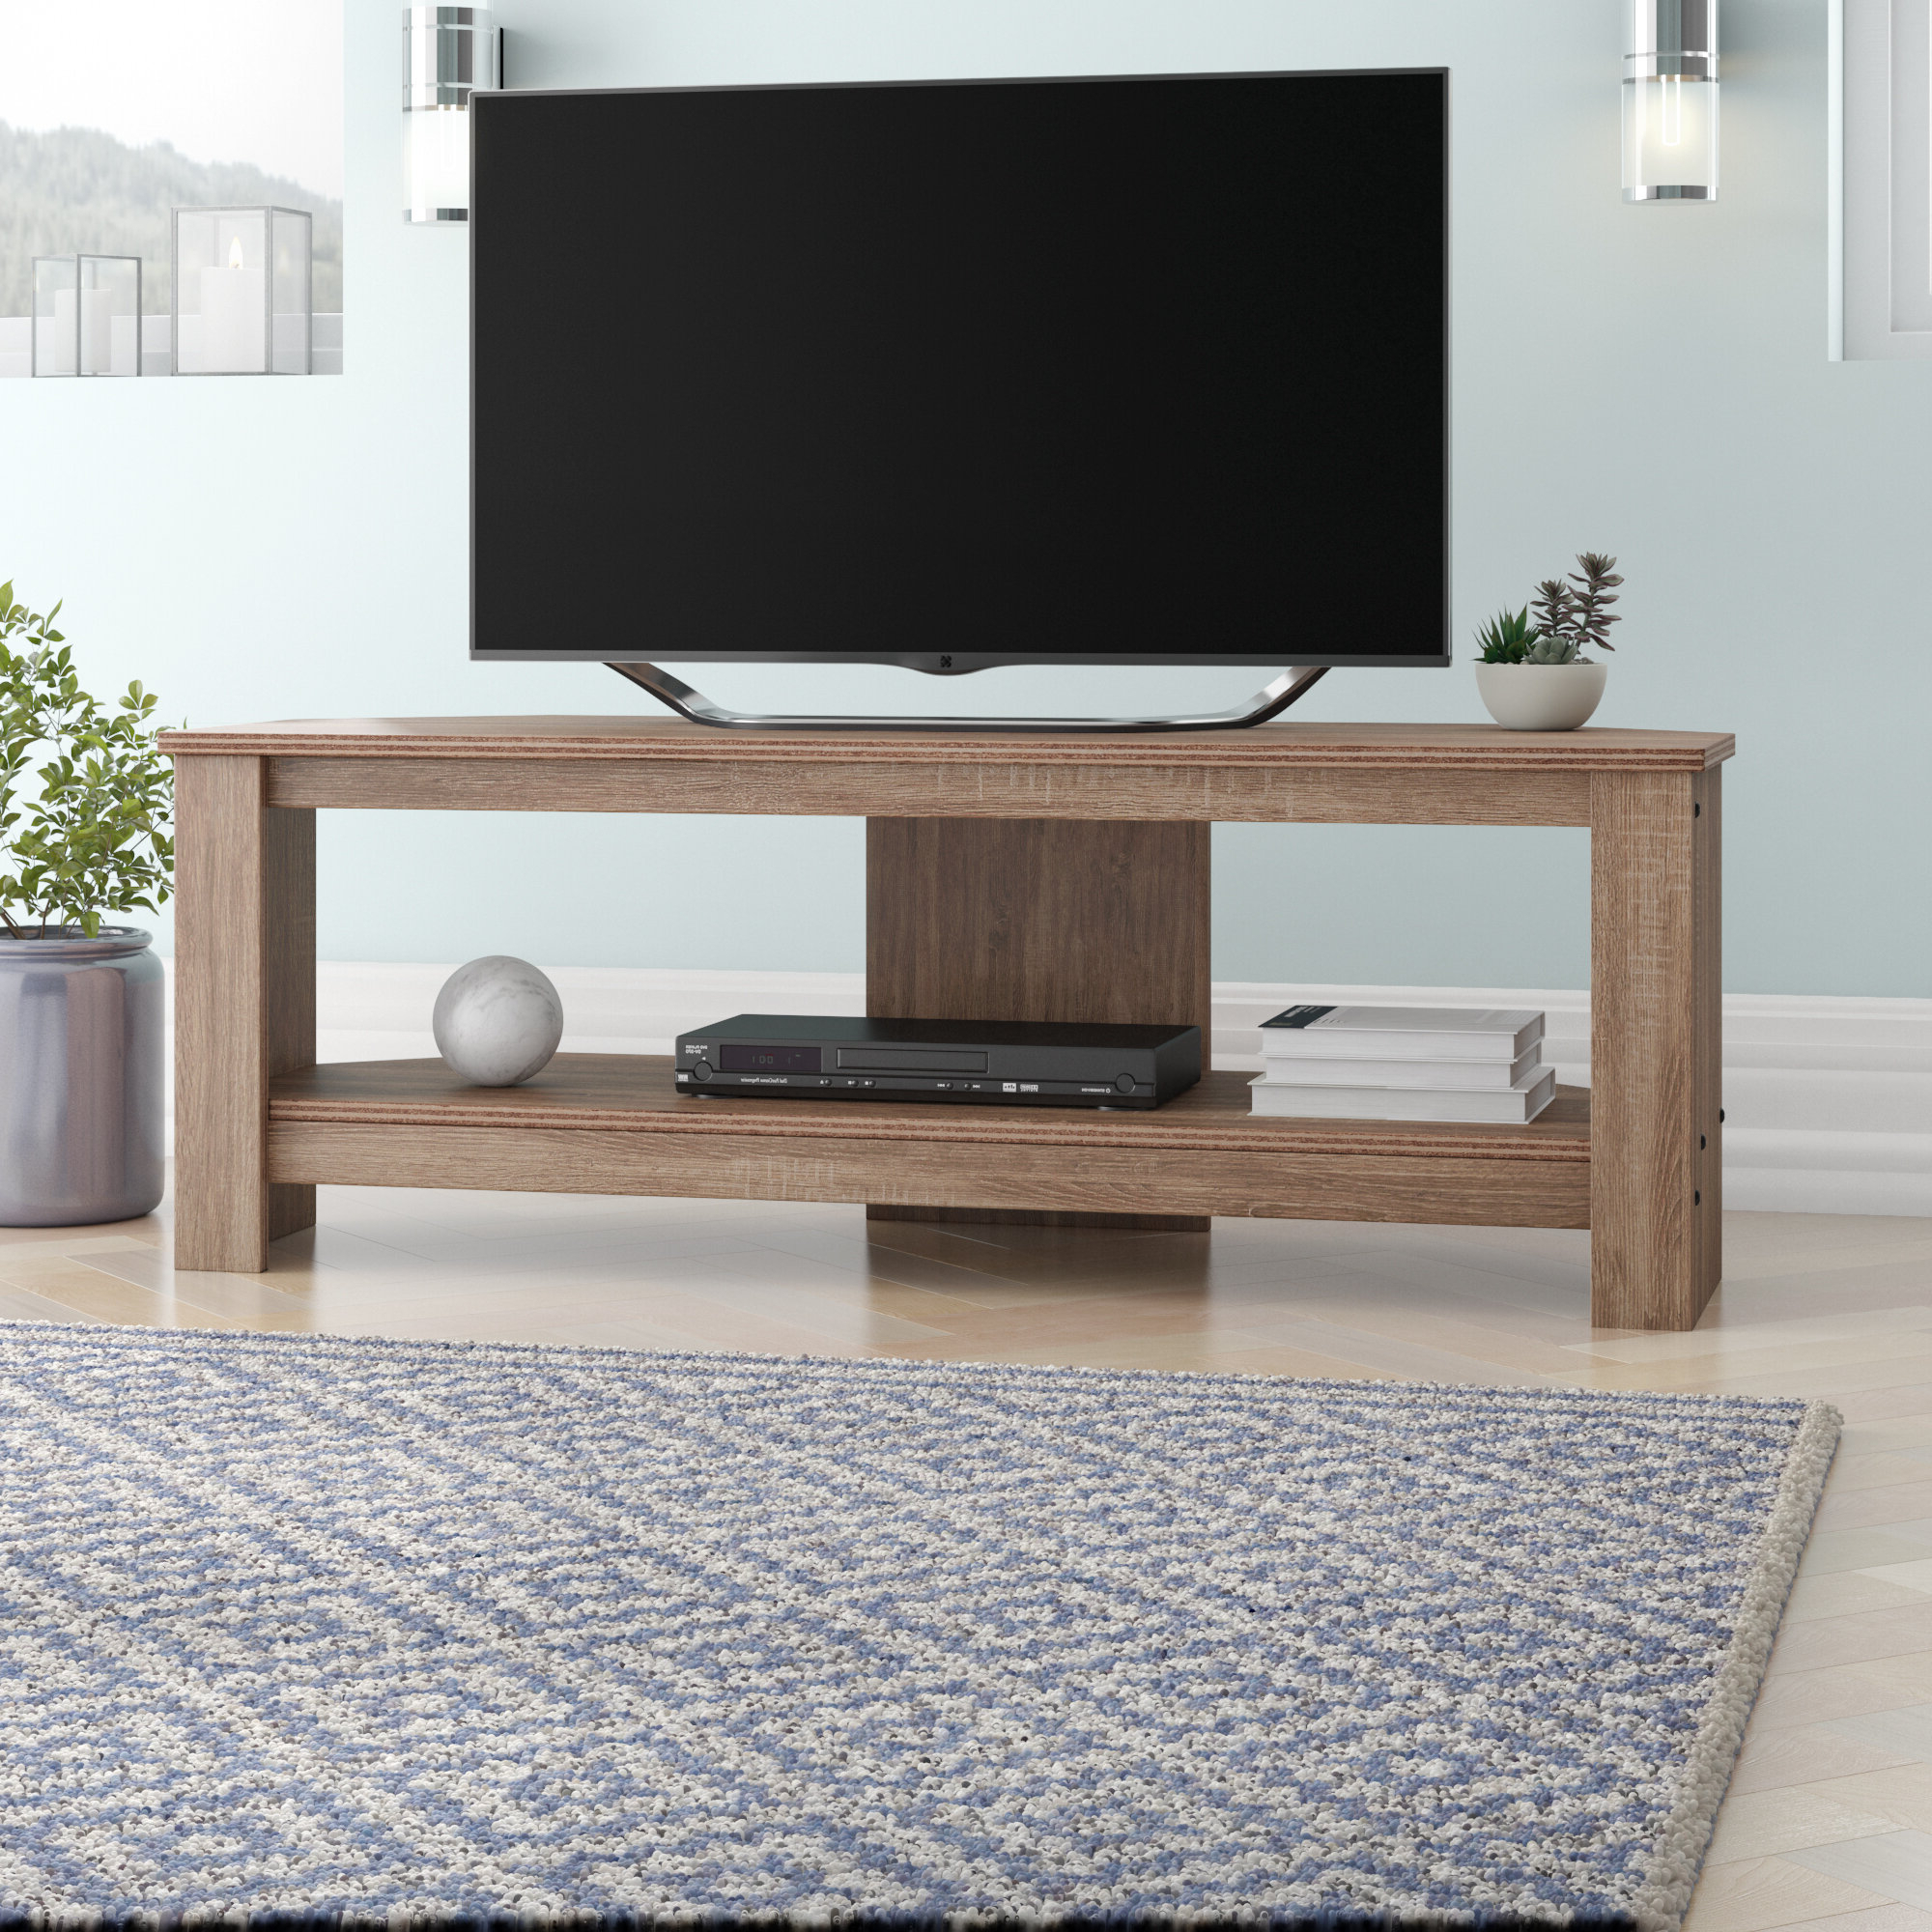 Corner Tv Stands For 46 Inch Flat Screen With Regard To 2018 Corner Tv Stands You'll Love (View 10 of 20)